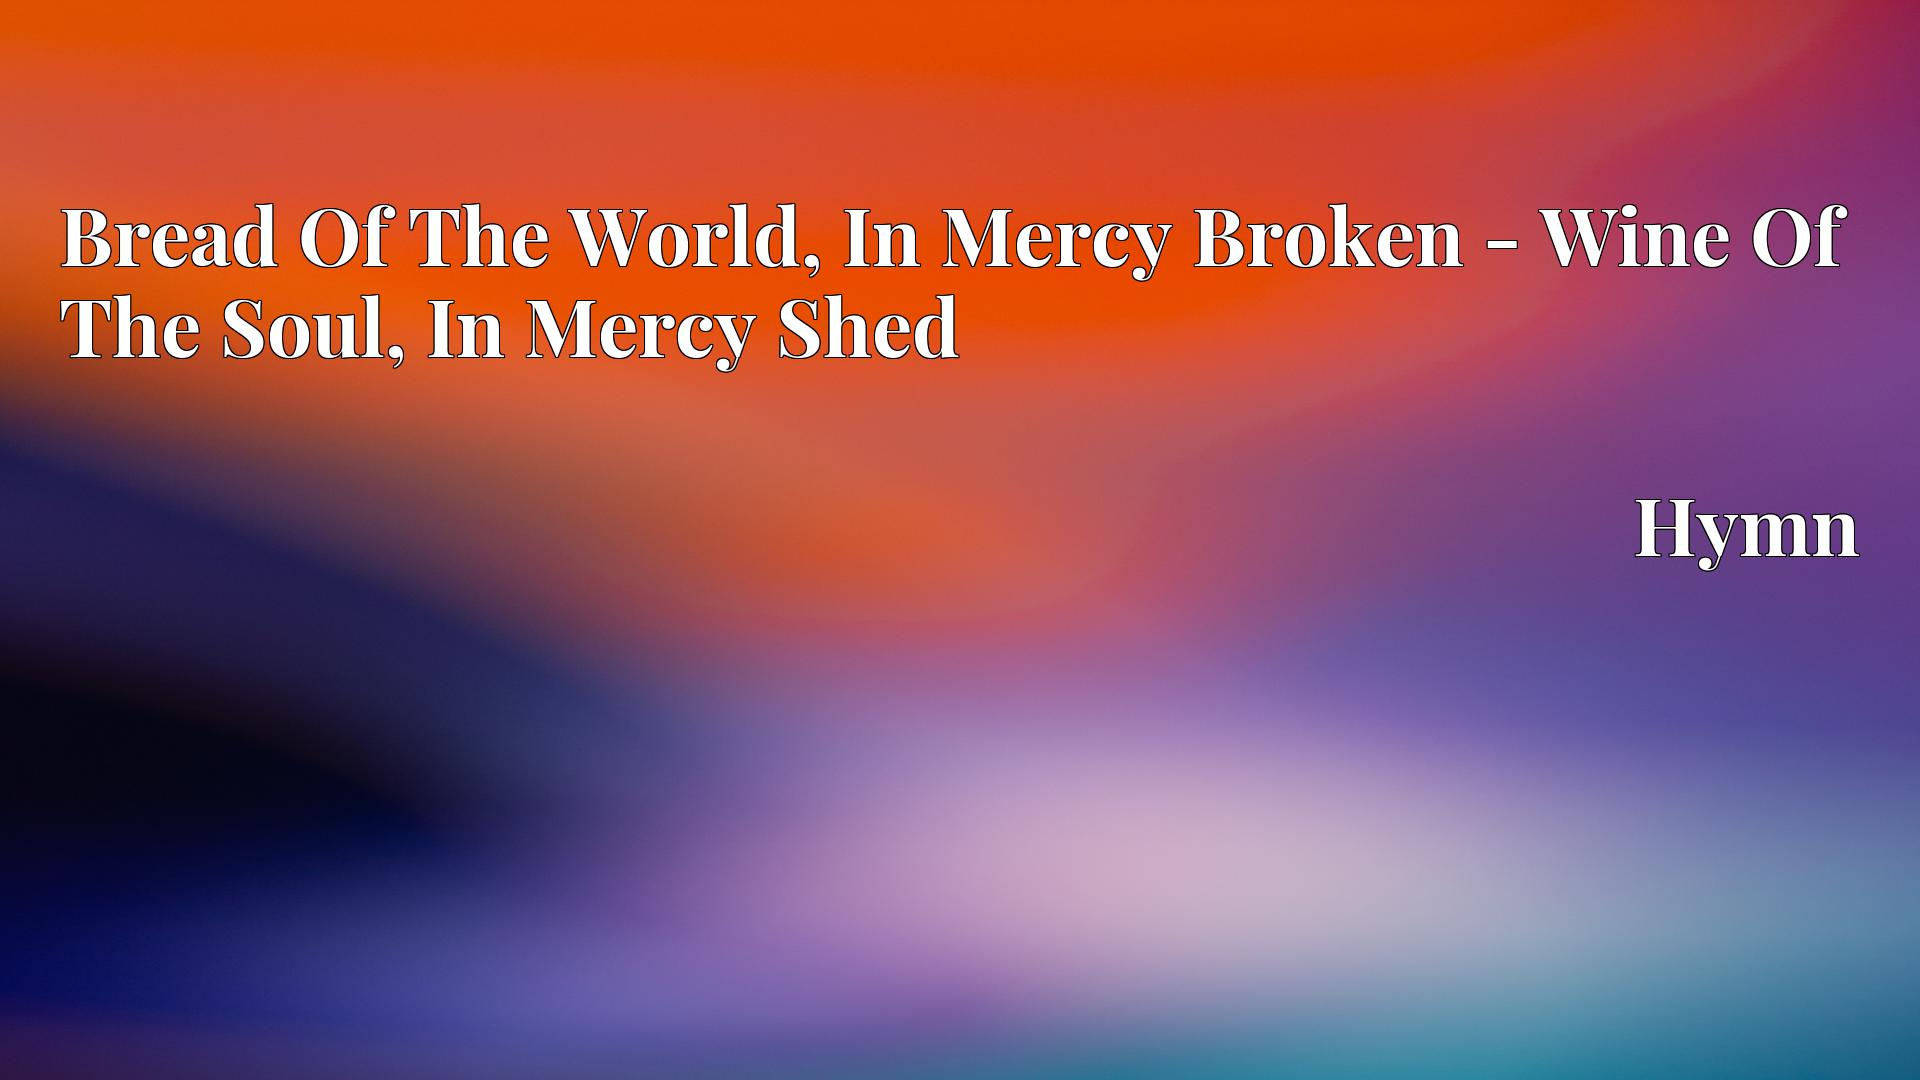 Bread Of The World, In Mercy Broken - Wine Of The Soul, In Mercy Shed Hymn